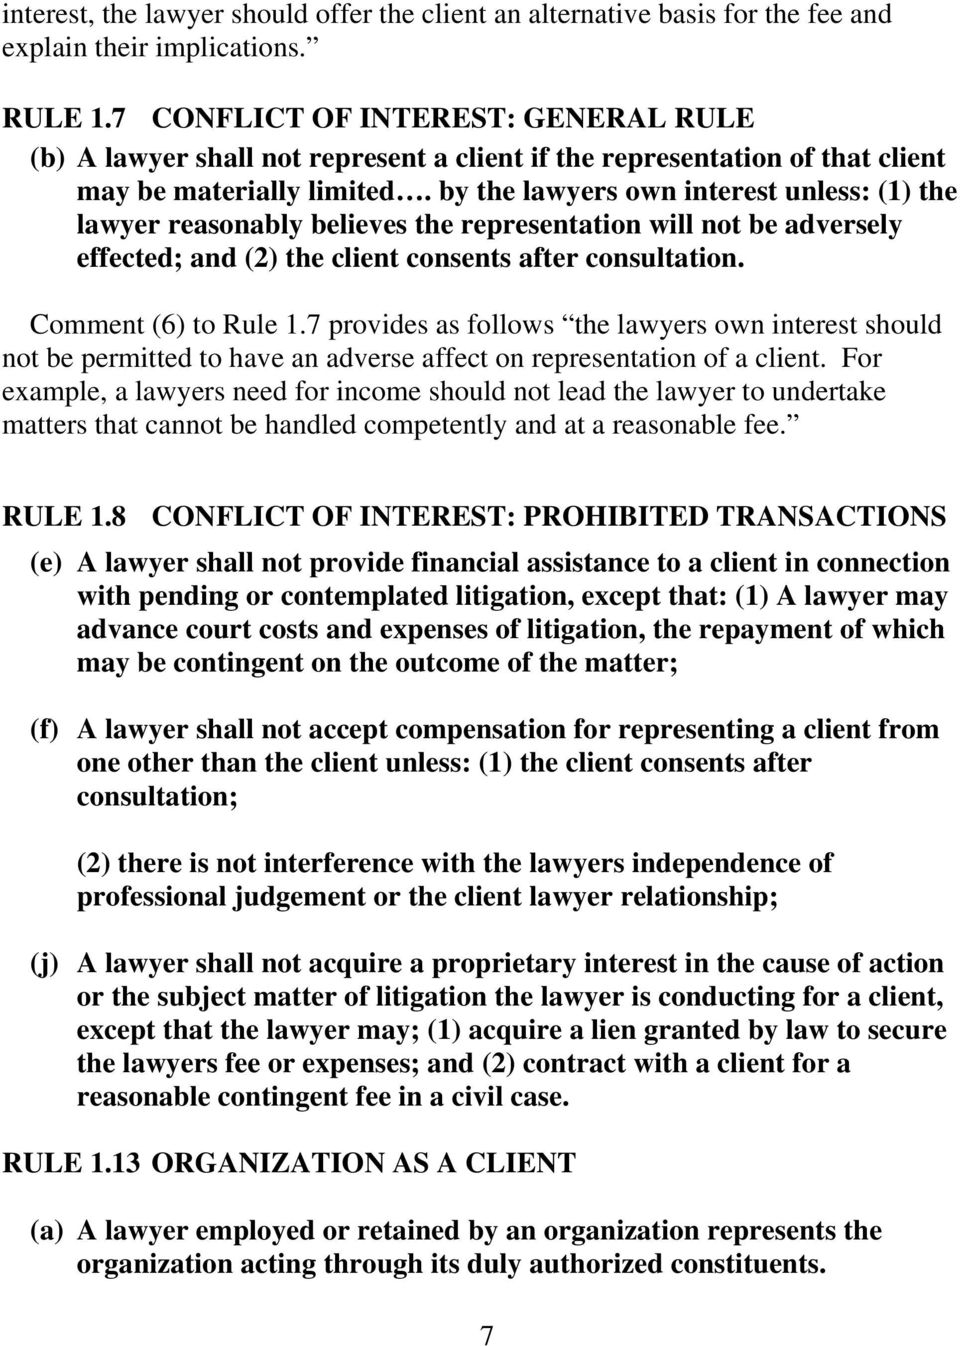 by the lawyers own interest unless: (1) the lawyer reasonably believes the representation will not be adversely effected; and (2) the client consents after consultation. Comment (6) to Rule 1.